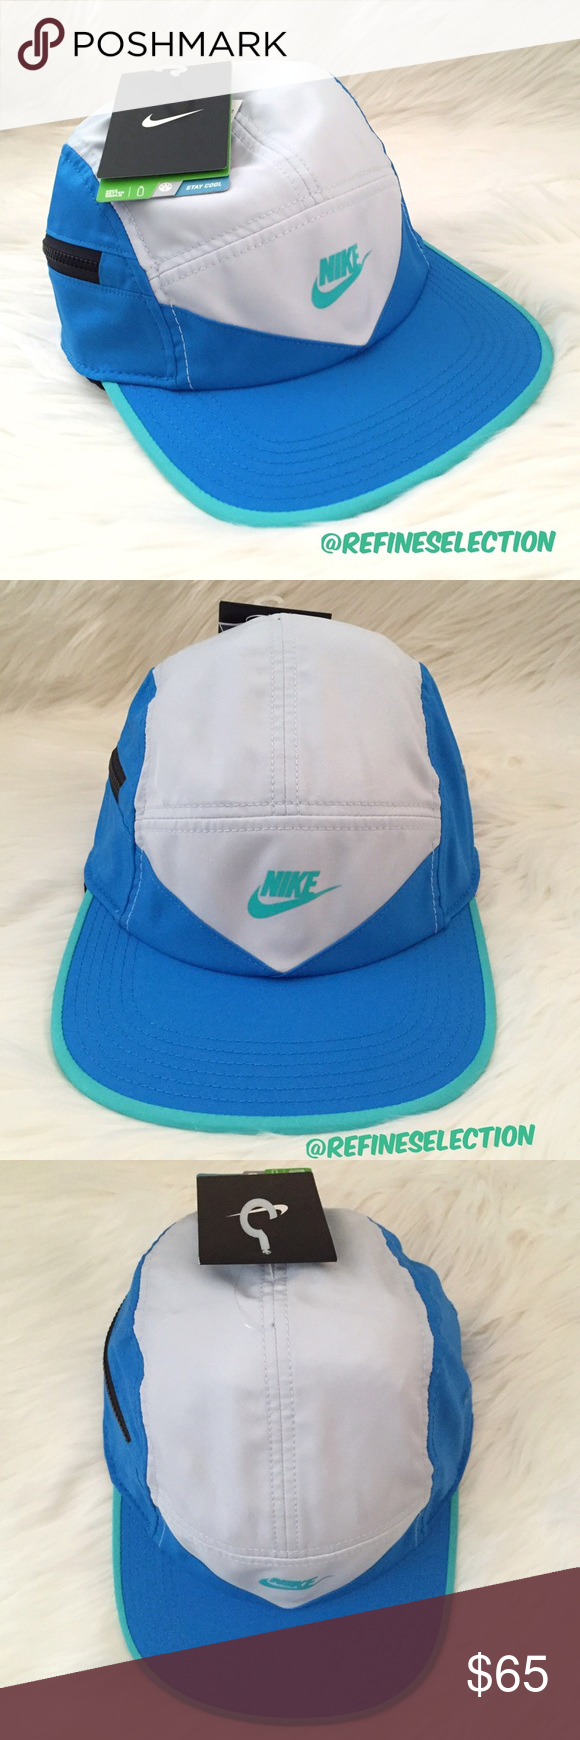 3c8fc3db577 Nike Windrunner 5 Panel Blue Grey Strapback Cap Brand new with tags